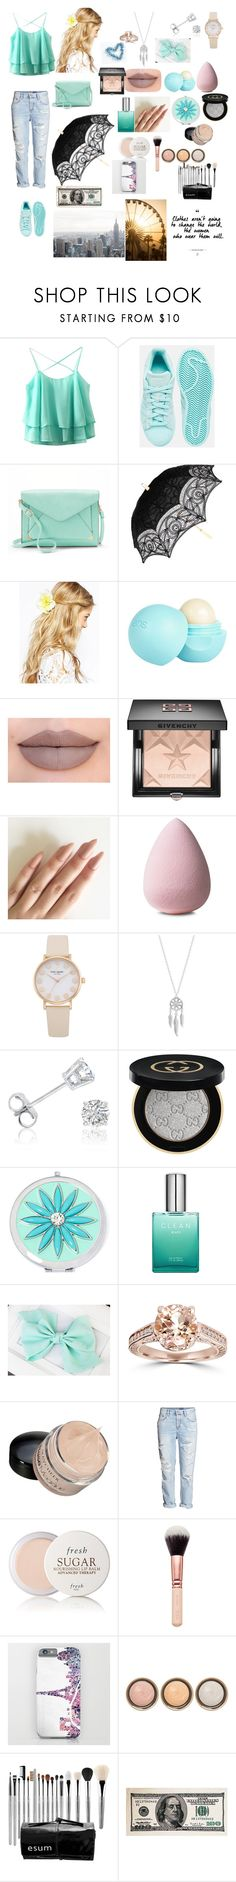 """""""Untitled #27"""" by fashion-dora15 ❤ liked on Polyvore featuring adidas, Apt. 9, ASOS, River Island, Jeffree Star, Givenchy, Lucky Brand, Amanda Rose Collection, Gucci and Liz Claiborne"""